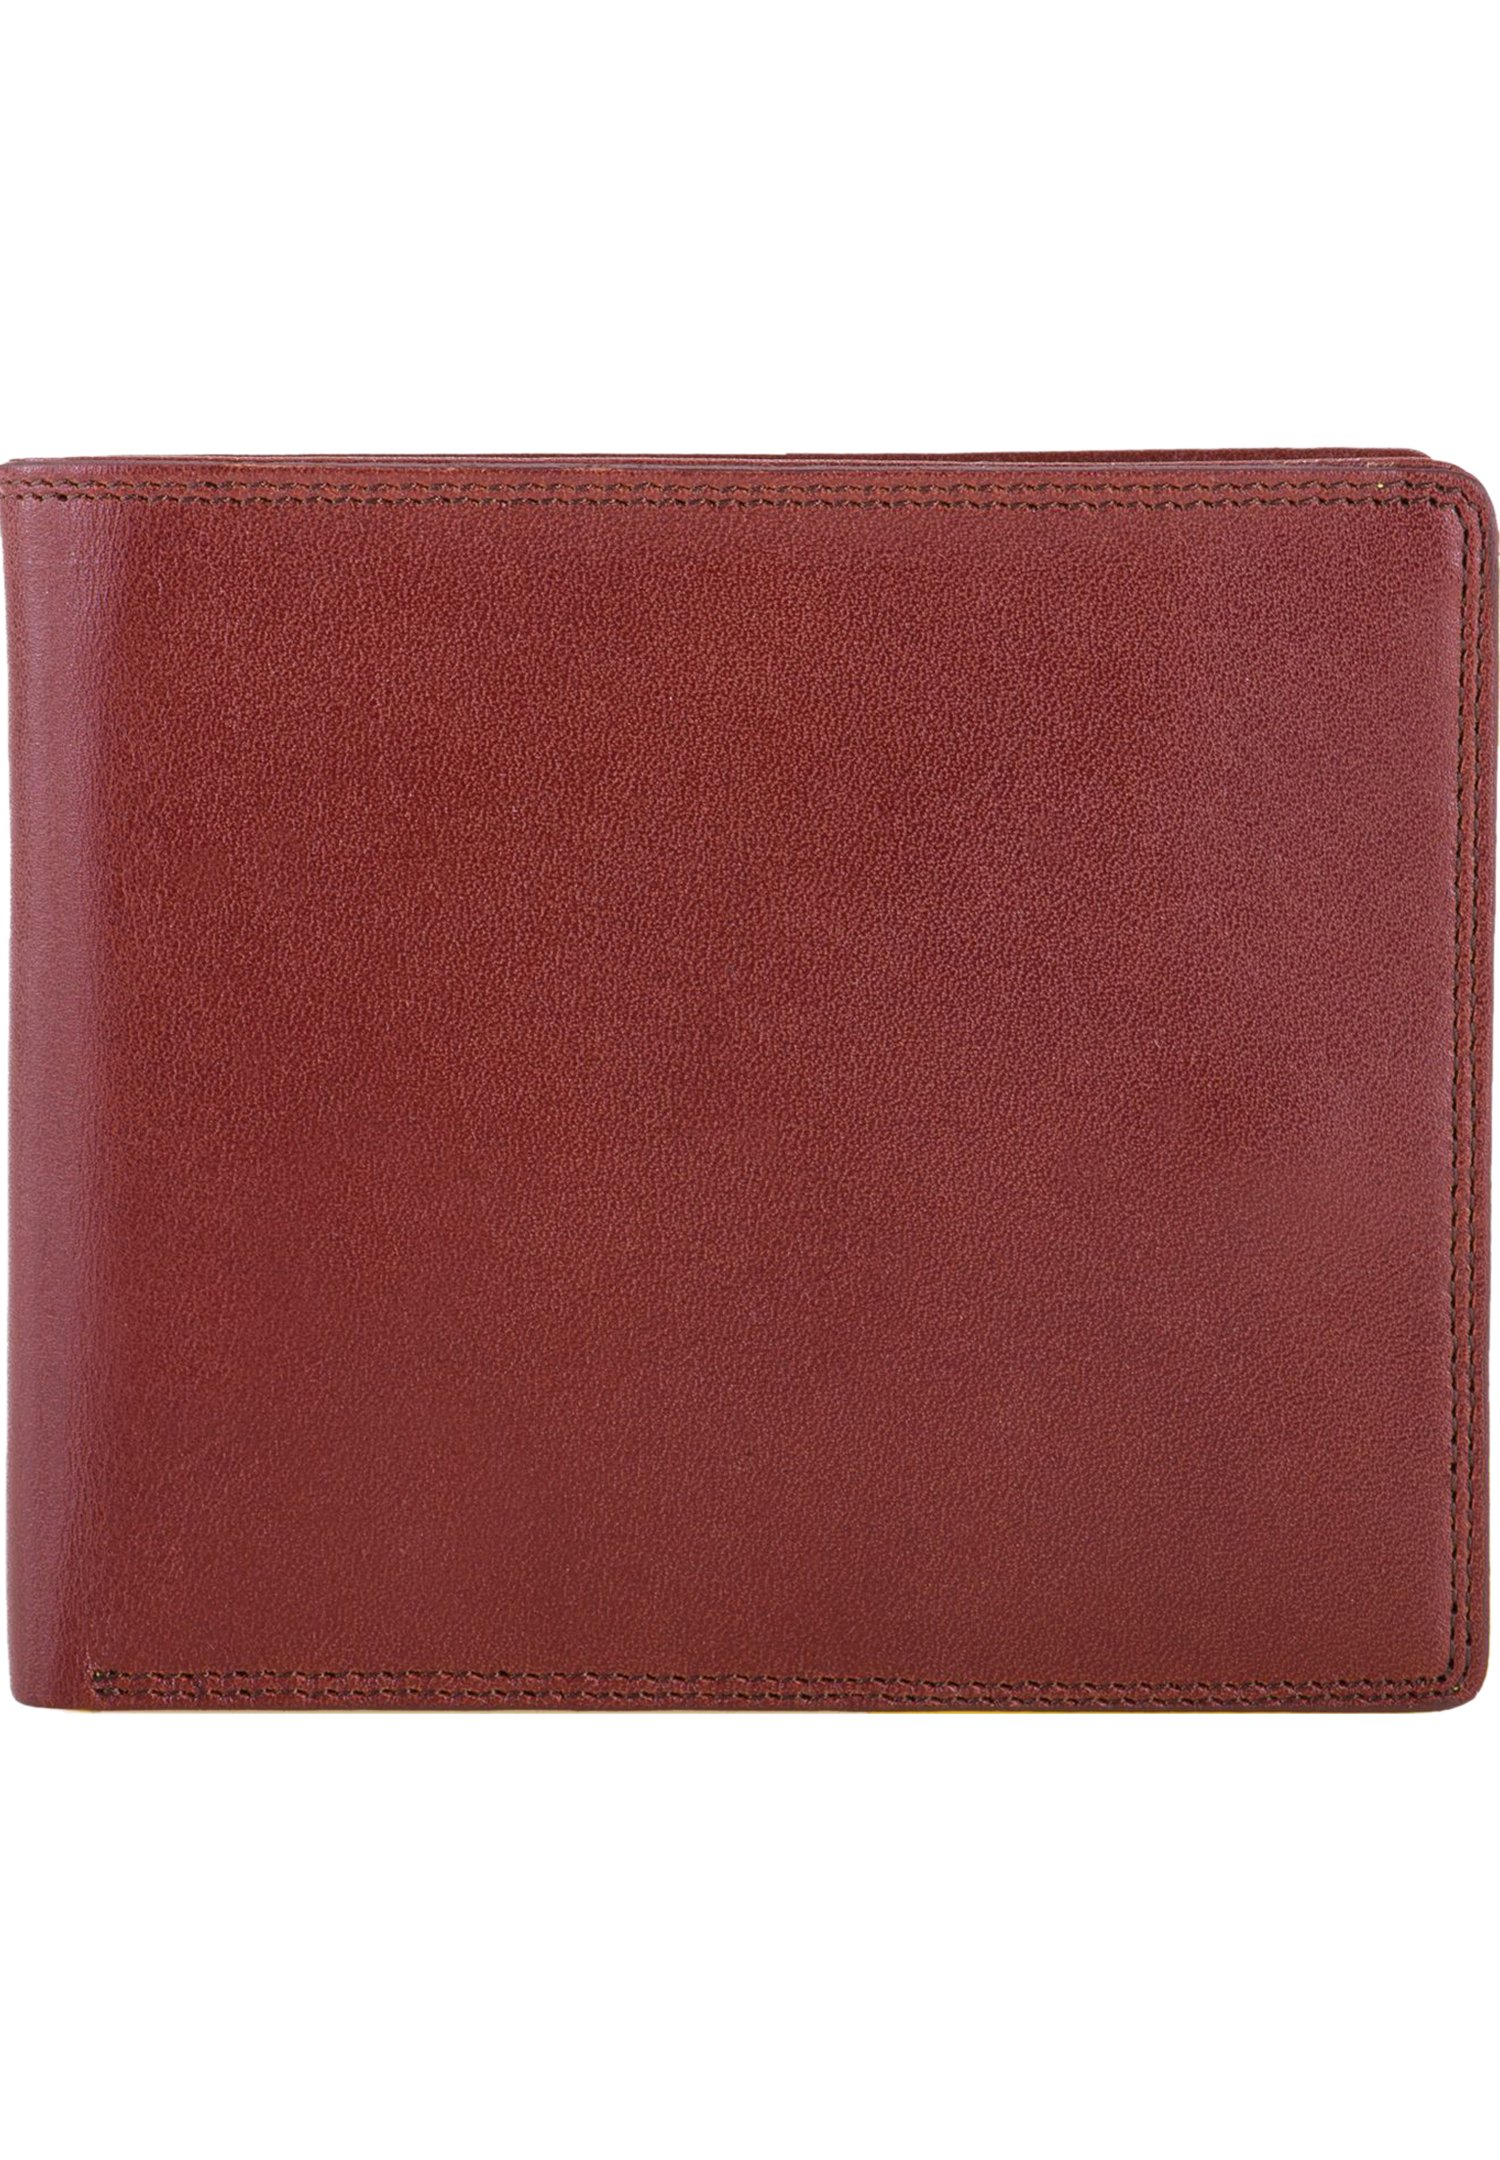 Homme RFID - Portefeuille